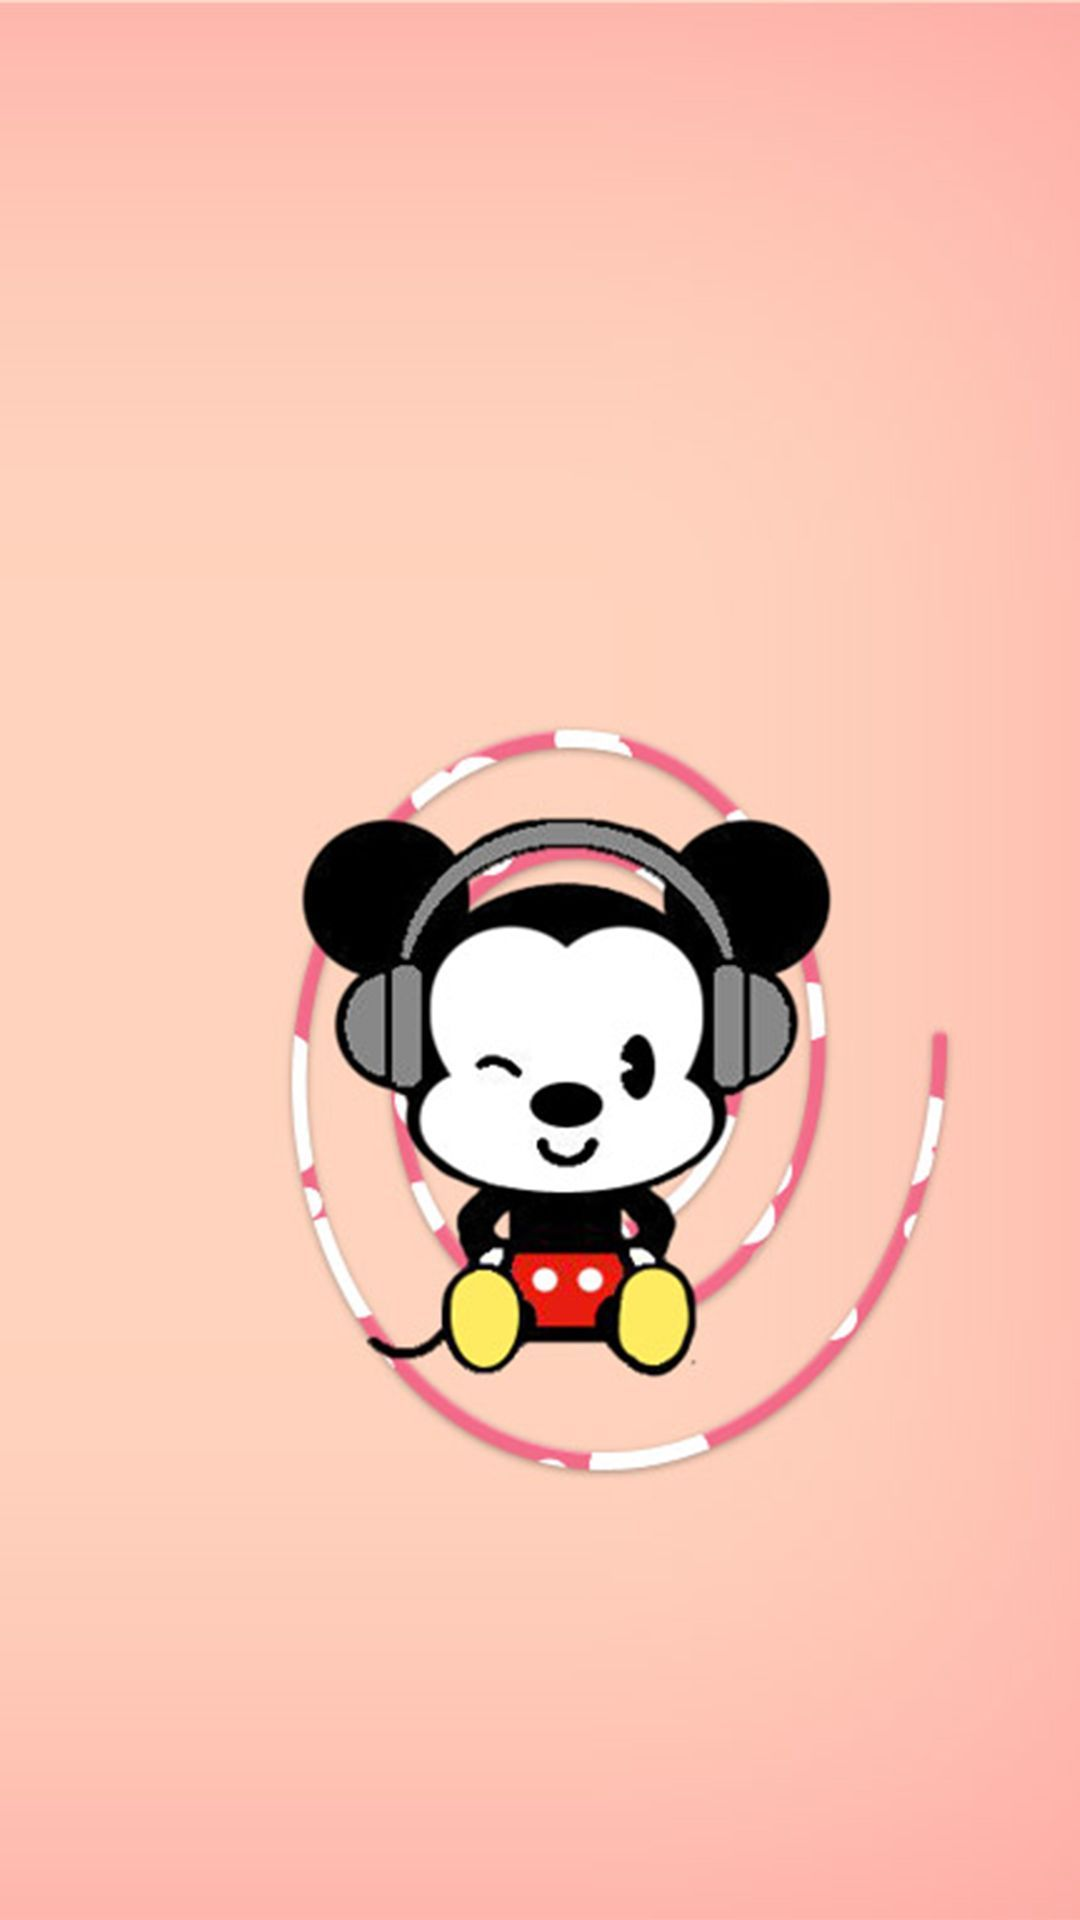 1080x1920 Mickey Mouse Wallpapers For IPhone | Fondos | Pinterest | Mickey  ... | Mickey mouse wallpaper iphone, Mickey mouse wallpaper, Mickey mouse  pictures